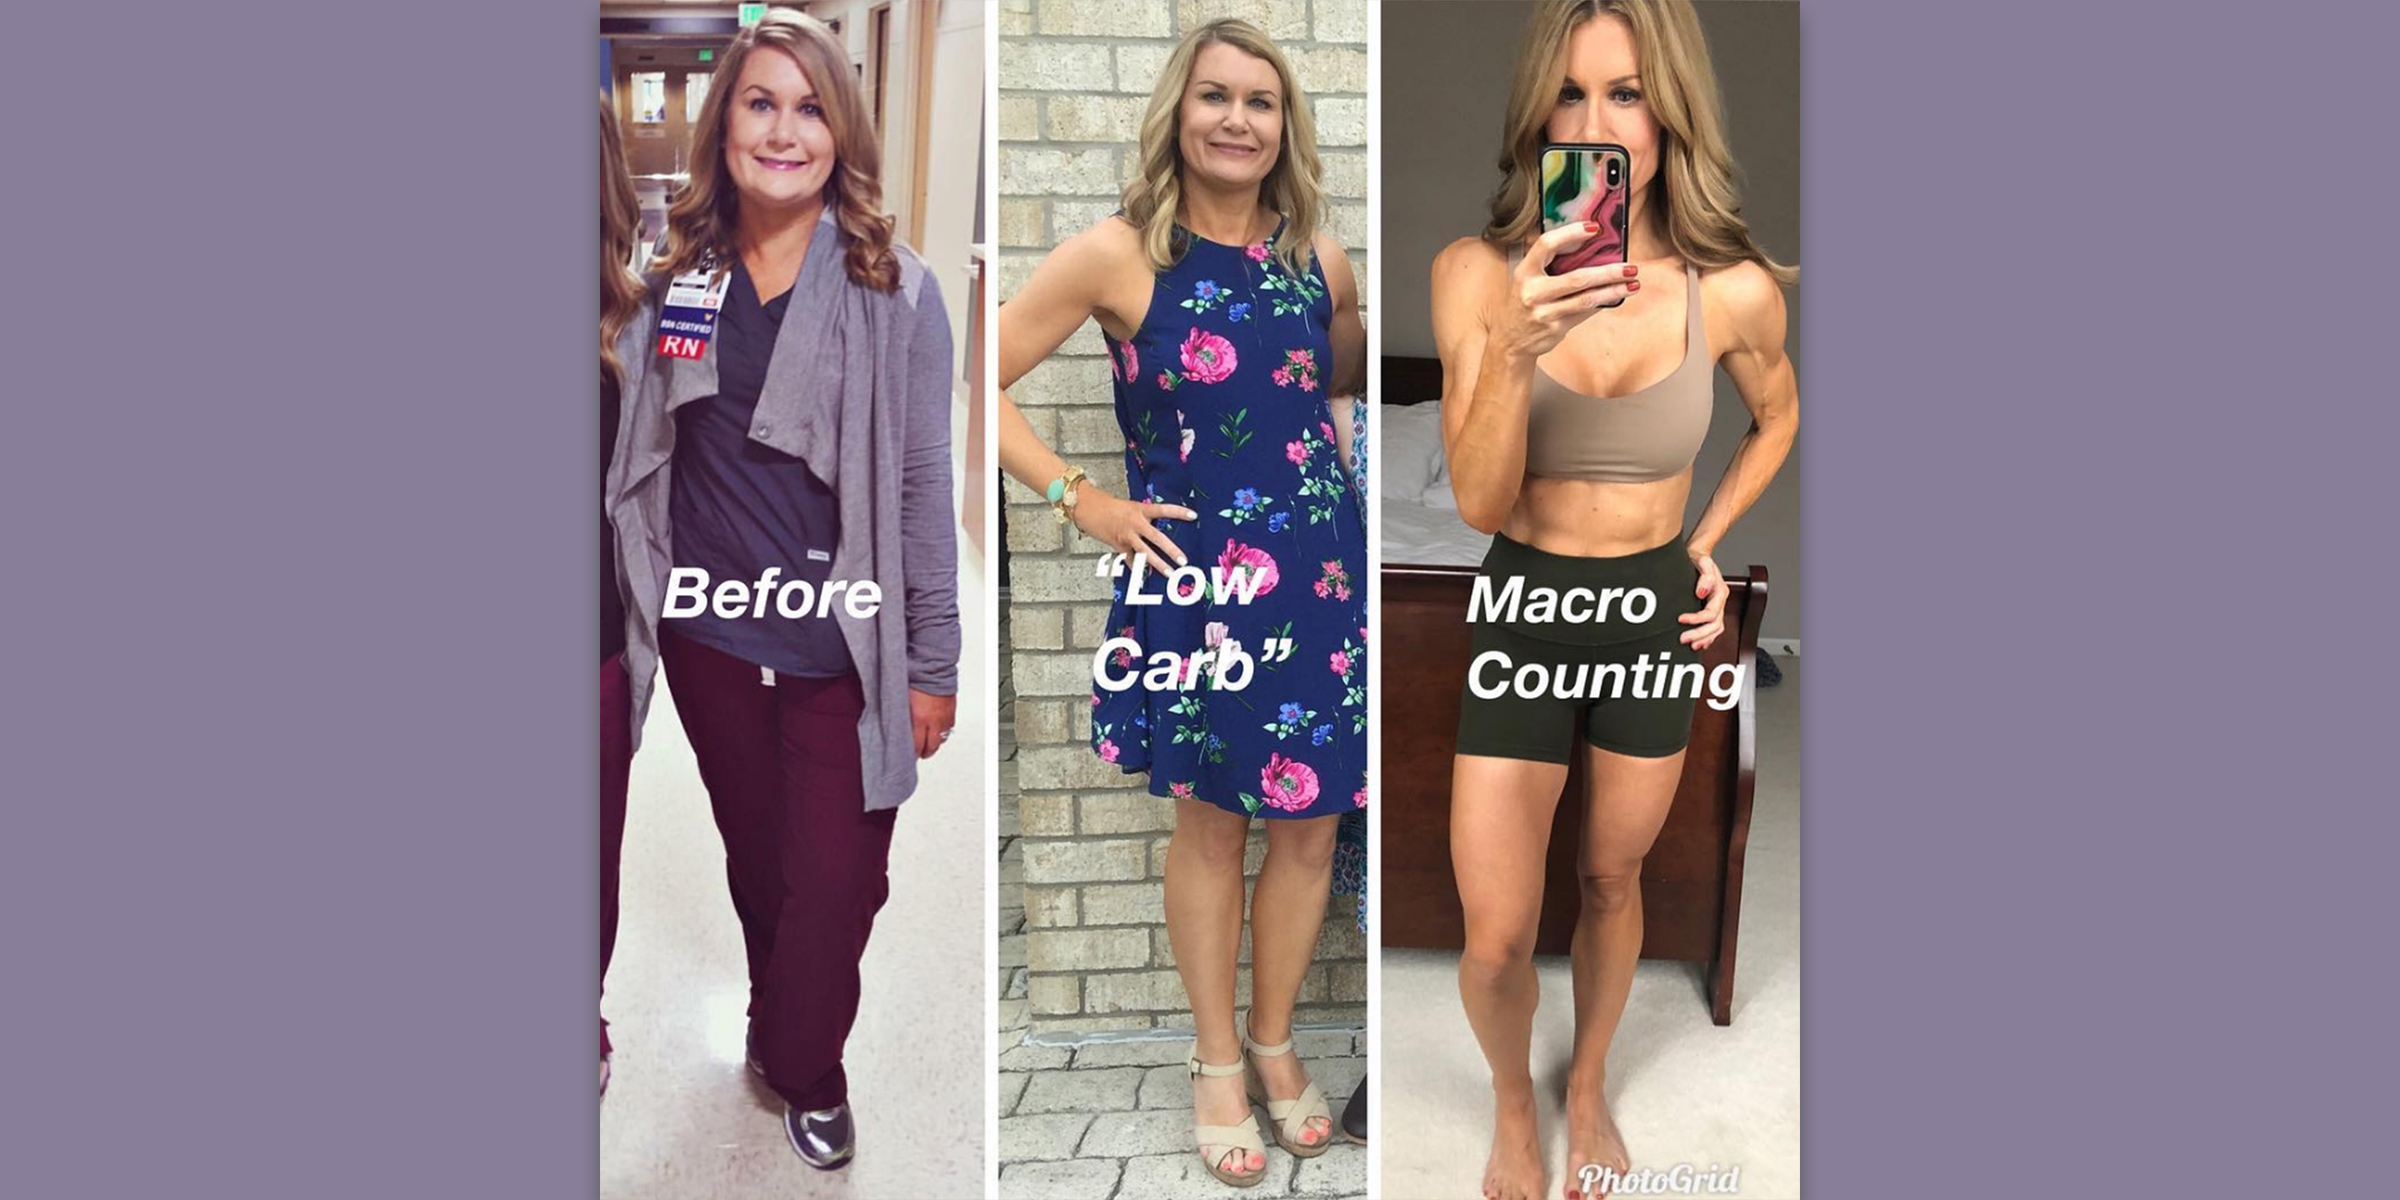 Macronutrient diet before and after